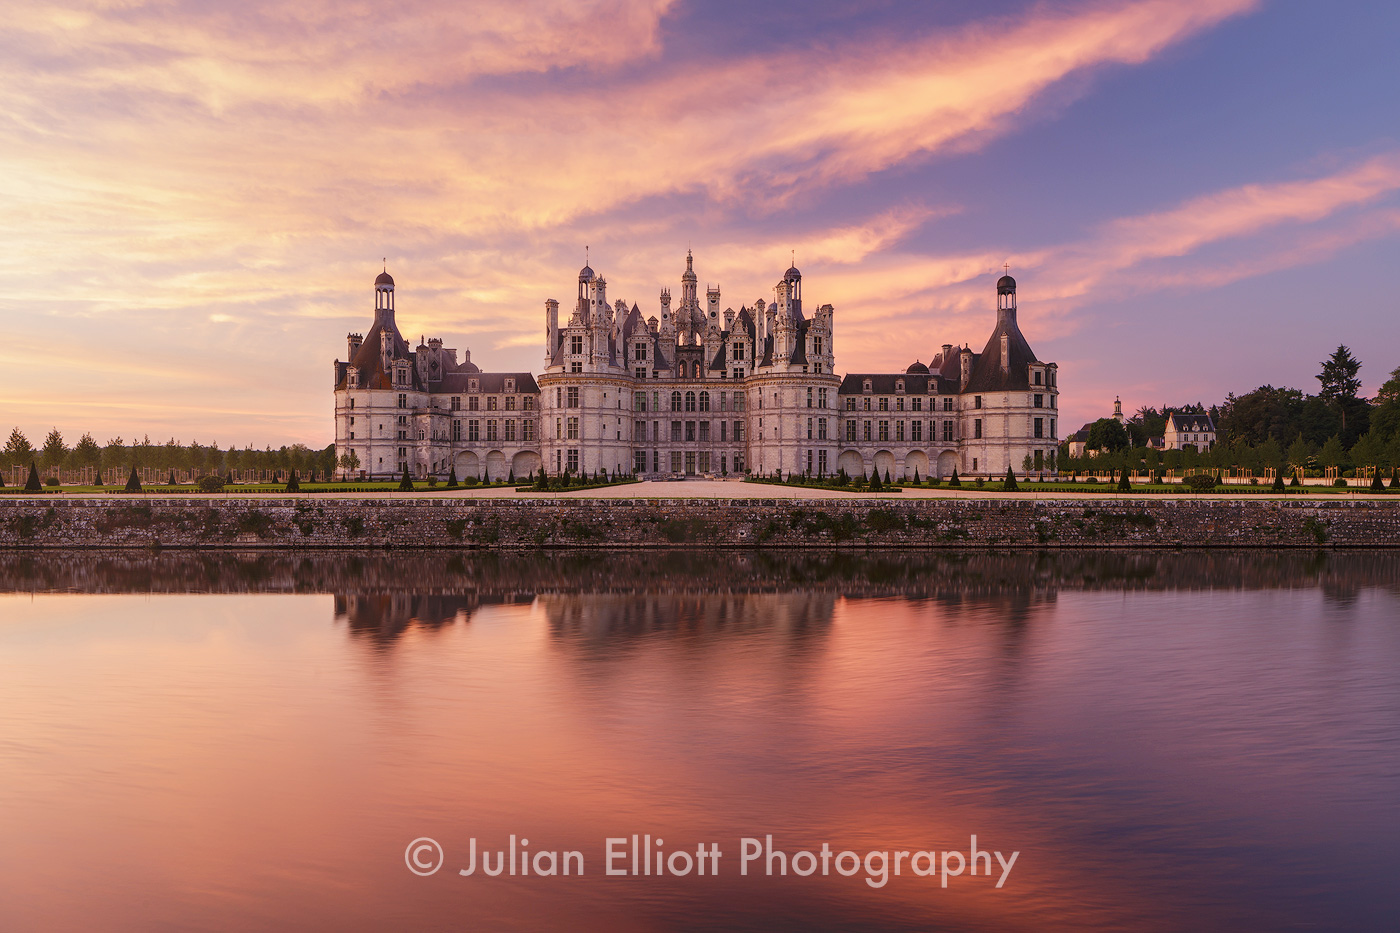 The chateau of Chambord in France.